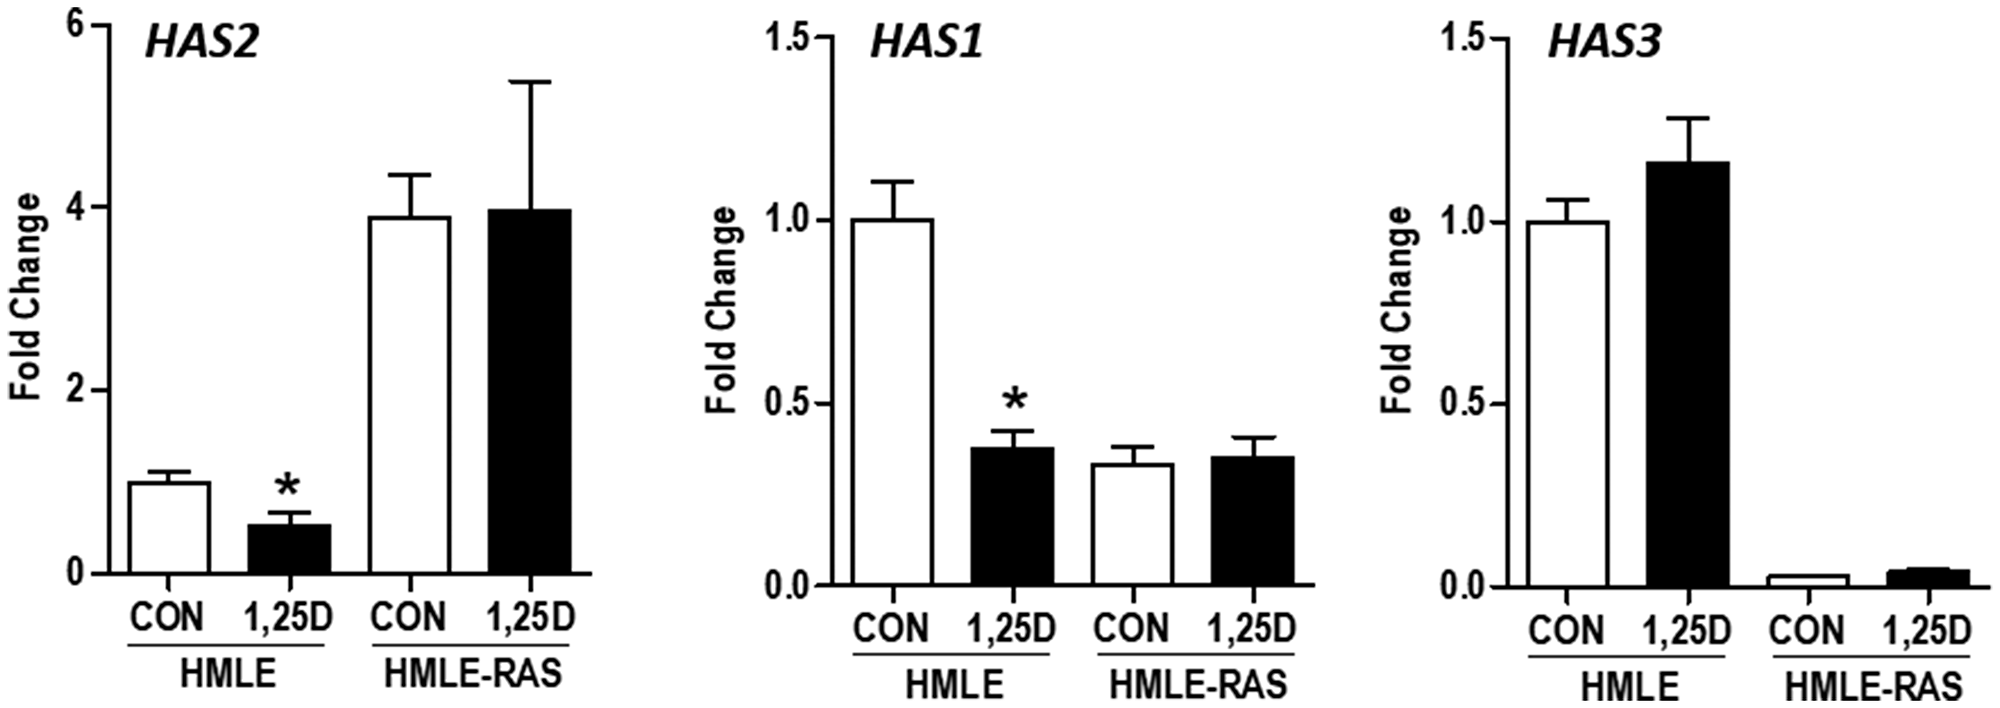 Effect of H-RASV12 transformation on HAS gene expression in immortalized human mammary epithelial cells.